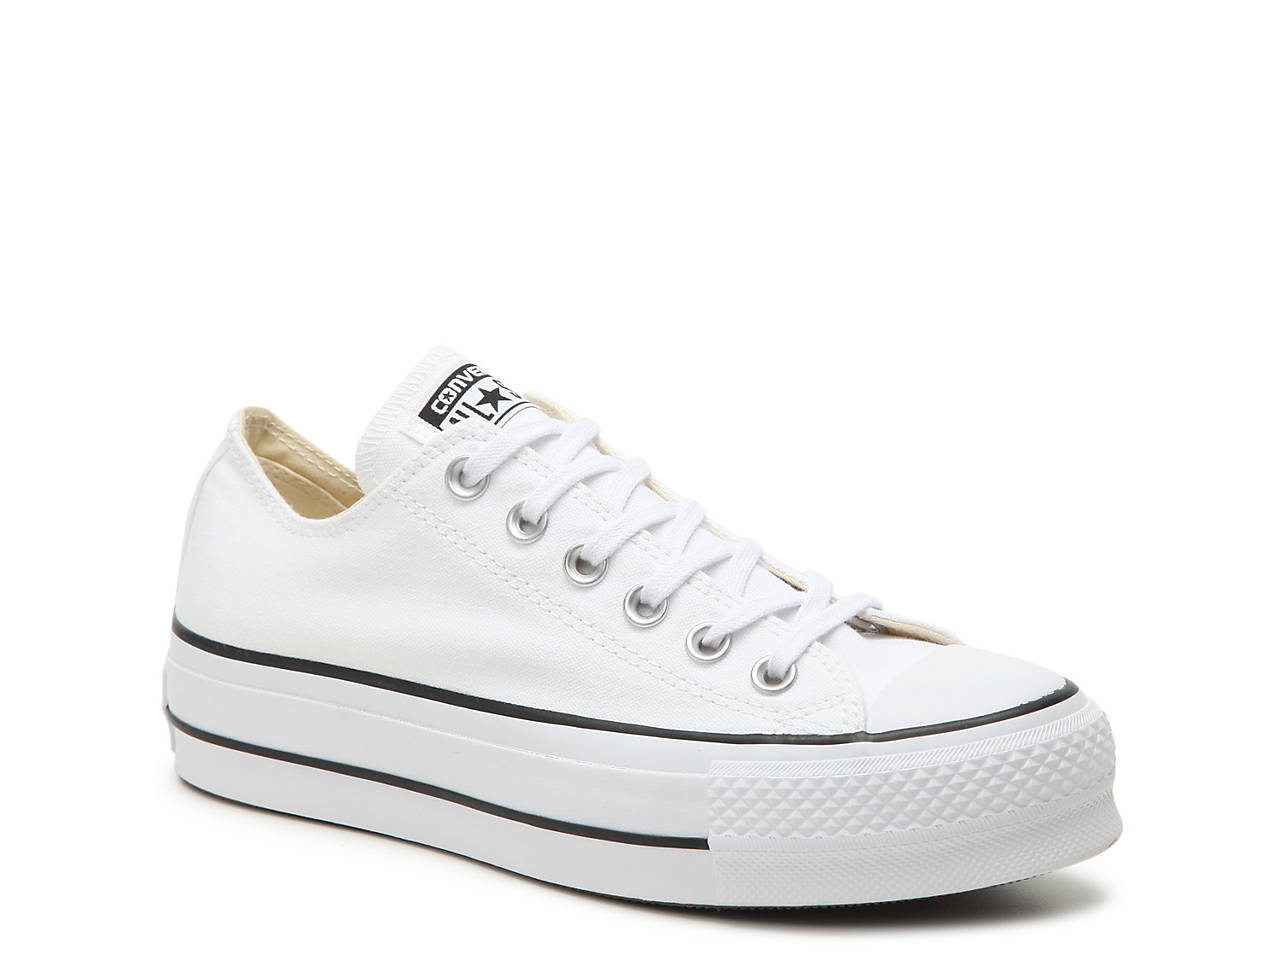 Chuck Taylor All Star Ox Platform Sneaker Women's